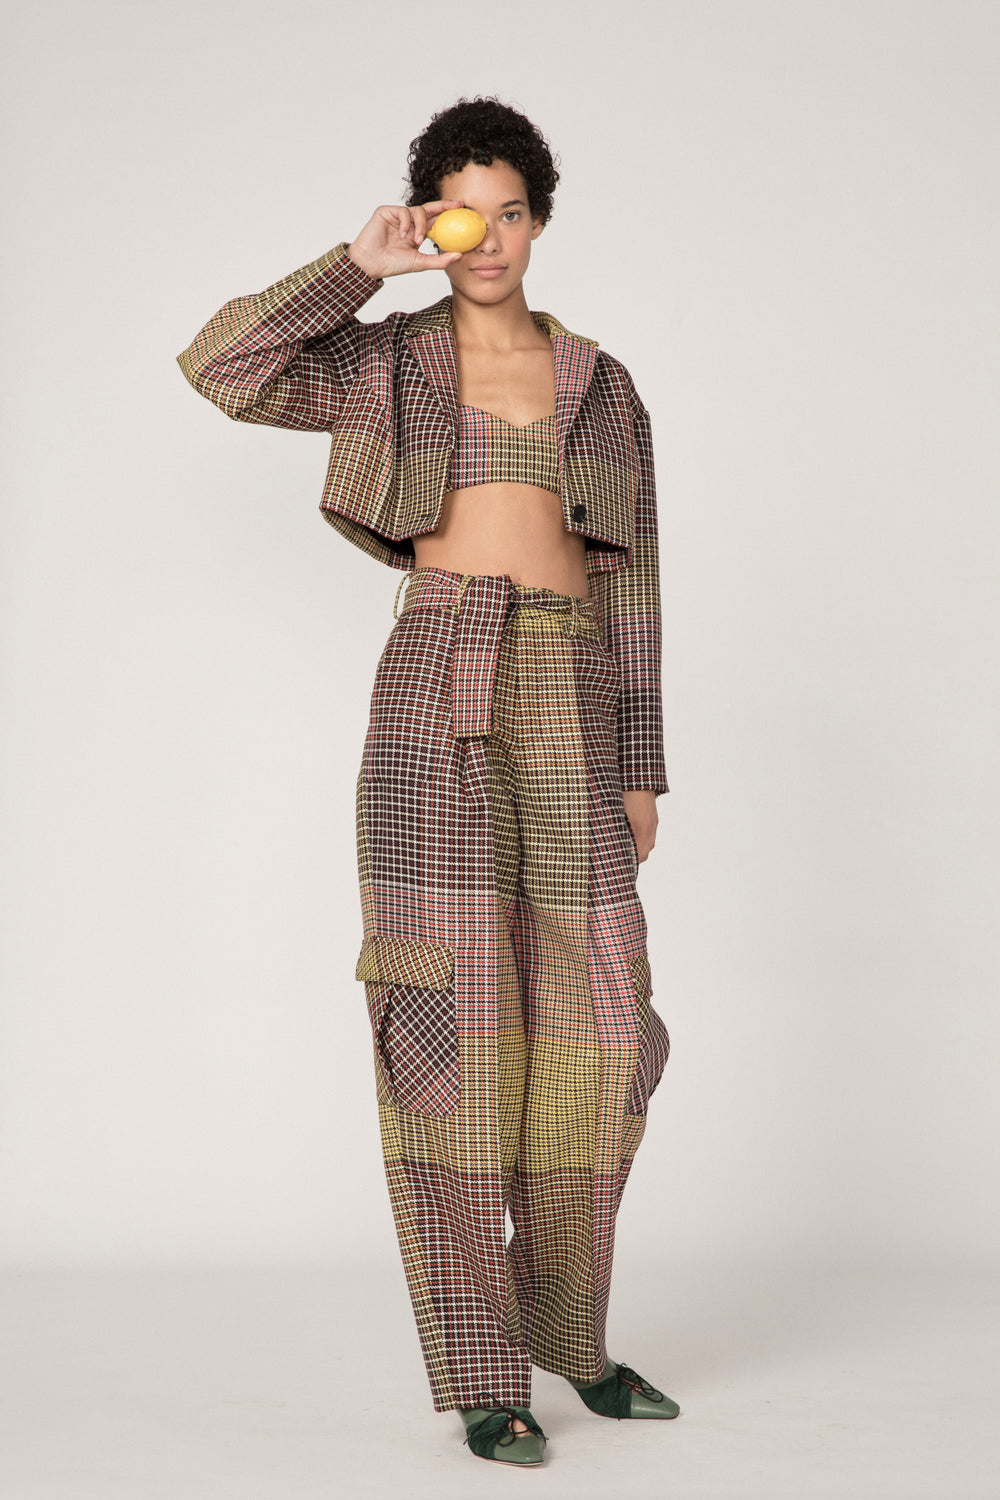 Rosie Assoulin Pre-Fall 2019 Belted Cargo Pant. High-waisted classic cargo pant. Four extra-large side pockets. Hook closures. Removable belt with buckle. Multicolored plaid. 100% Virgin Wool. Sizes 0 - 12.